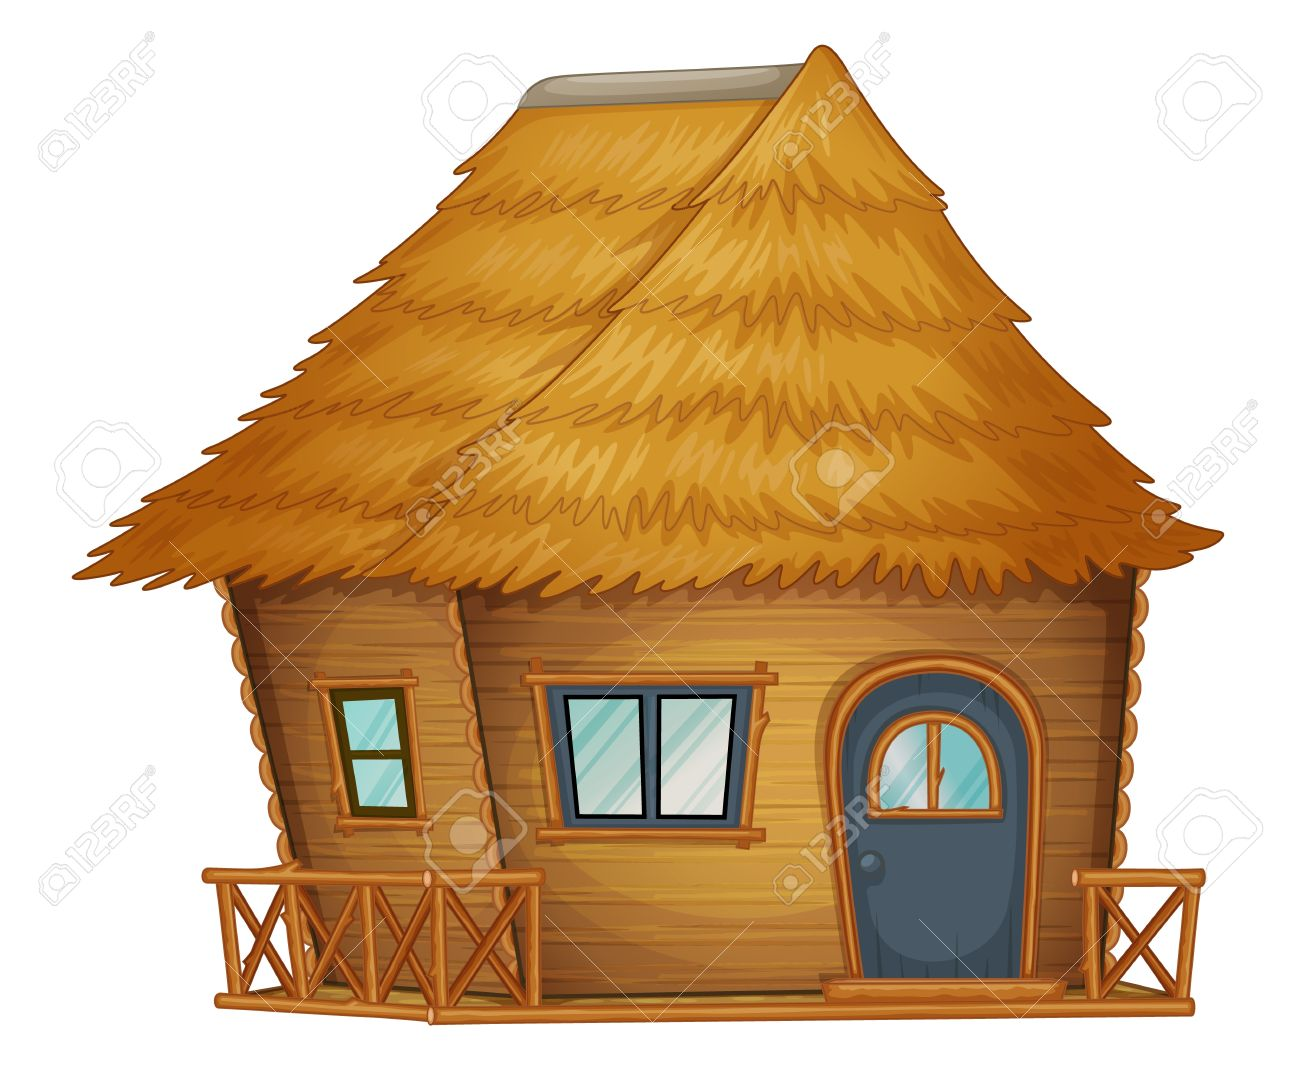 Hut Or Cabin On A White Background Royalty Free Cliparts Vectors